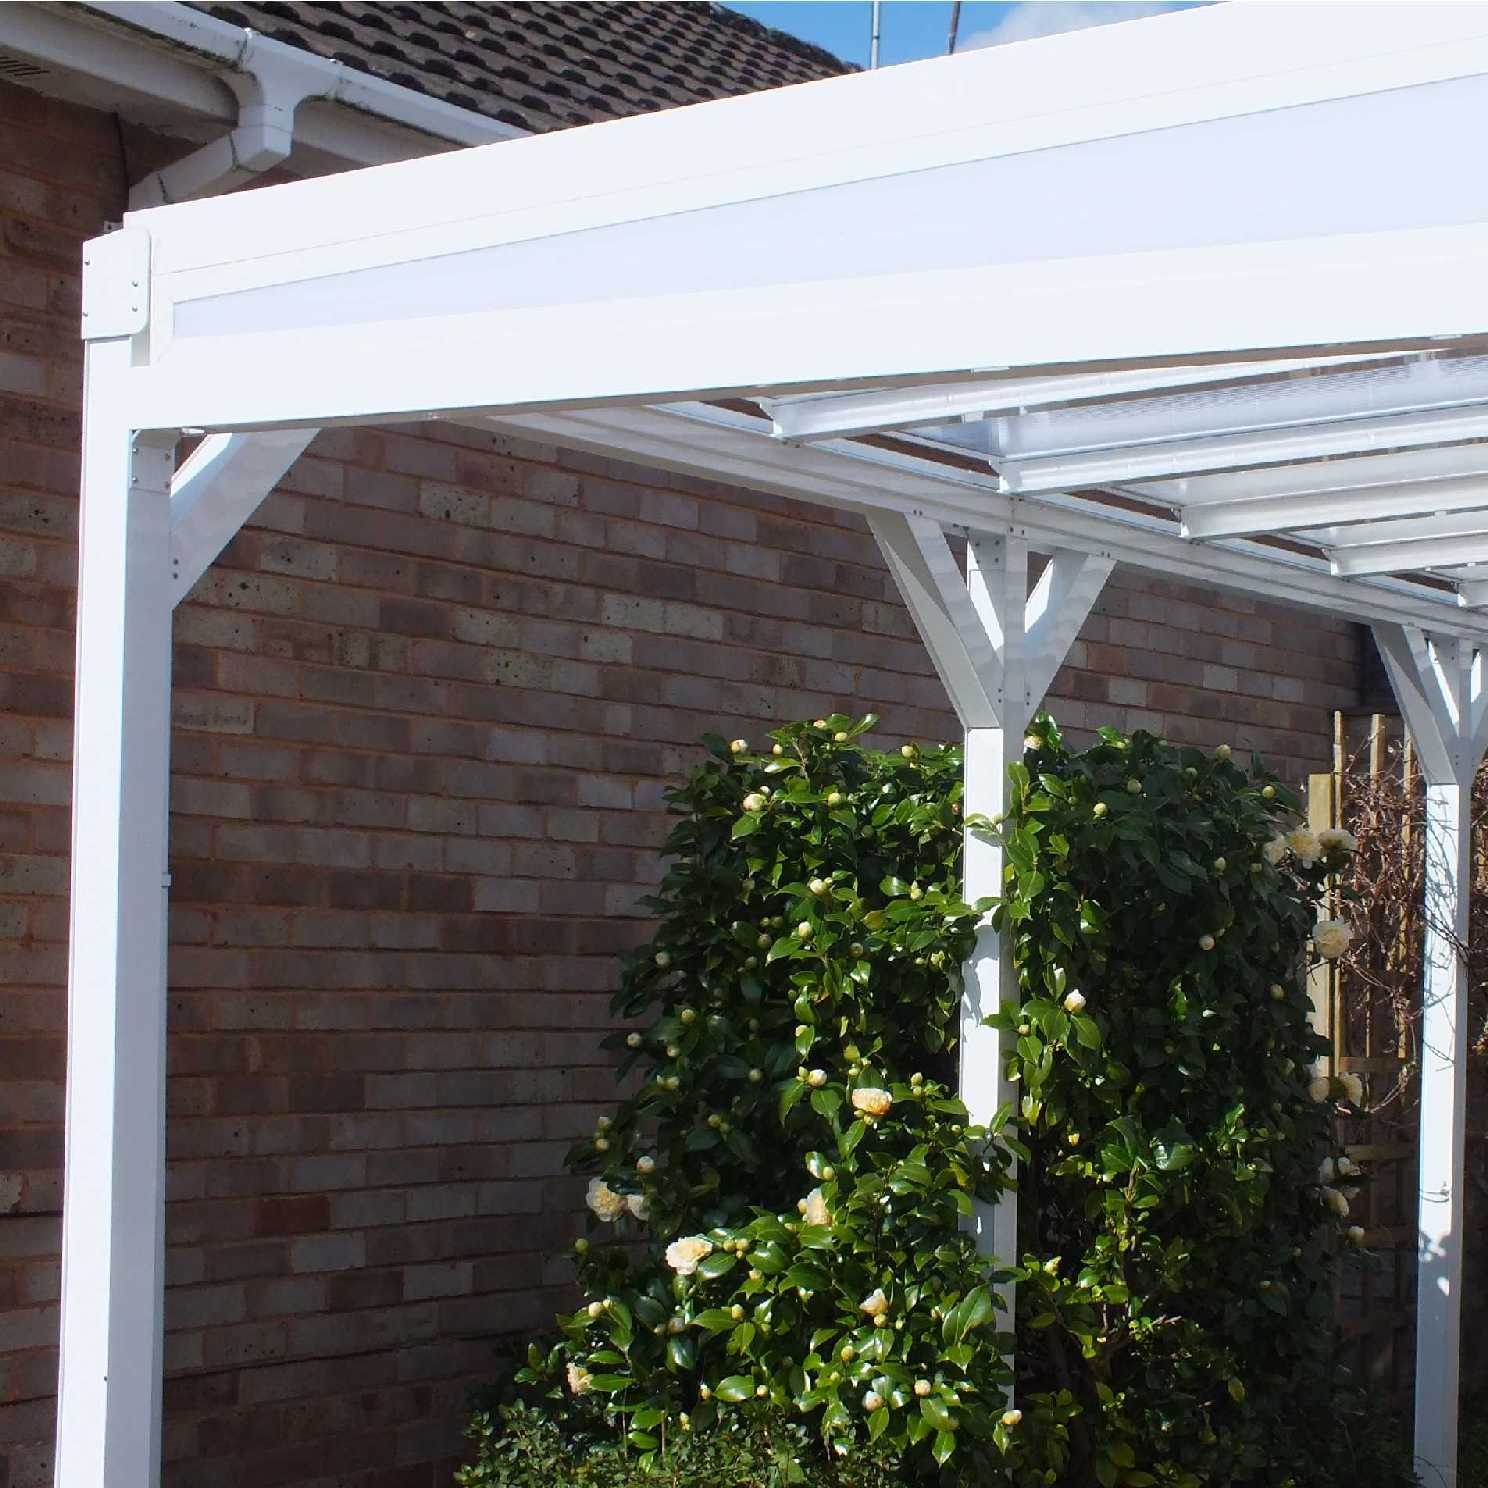 Omega Smart White Lean-To Canopy with 16mm Polycarbonate Glazing - 10.6m (W) x 3.0m (P), (5) Supporting Posts from Omega Build